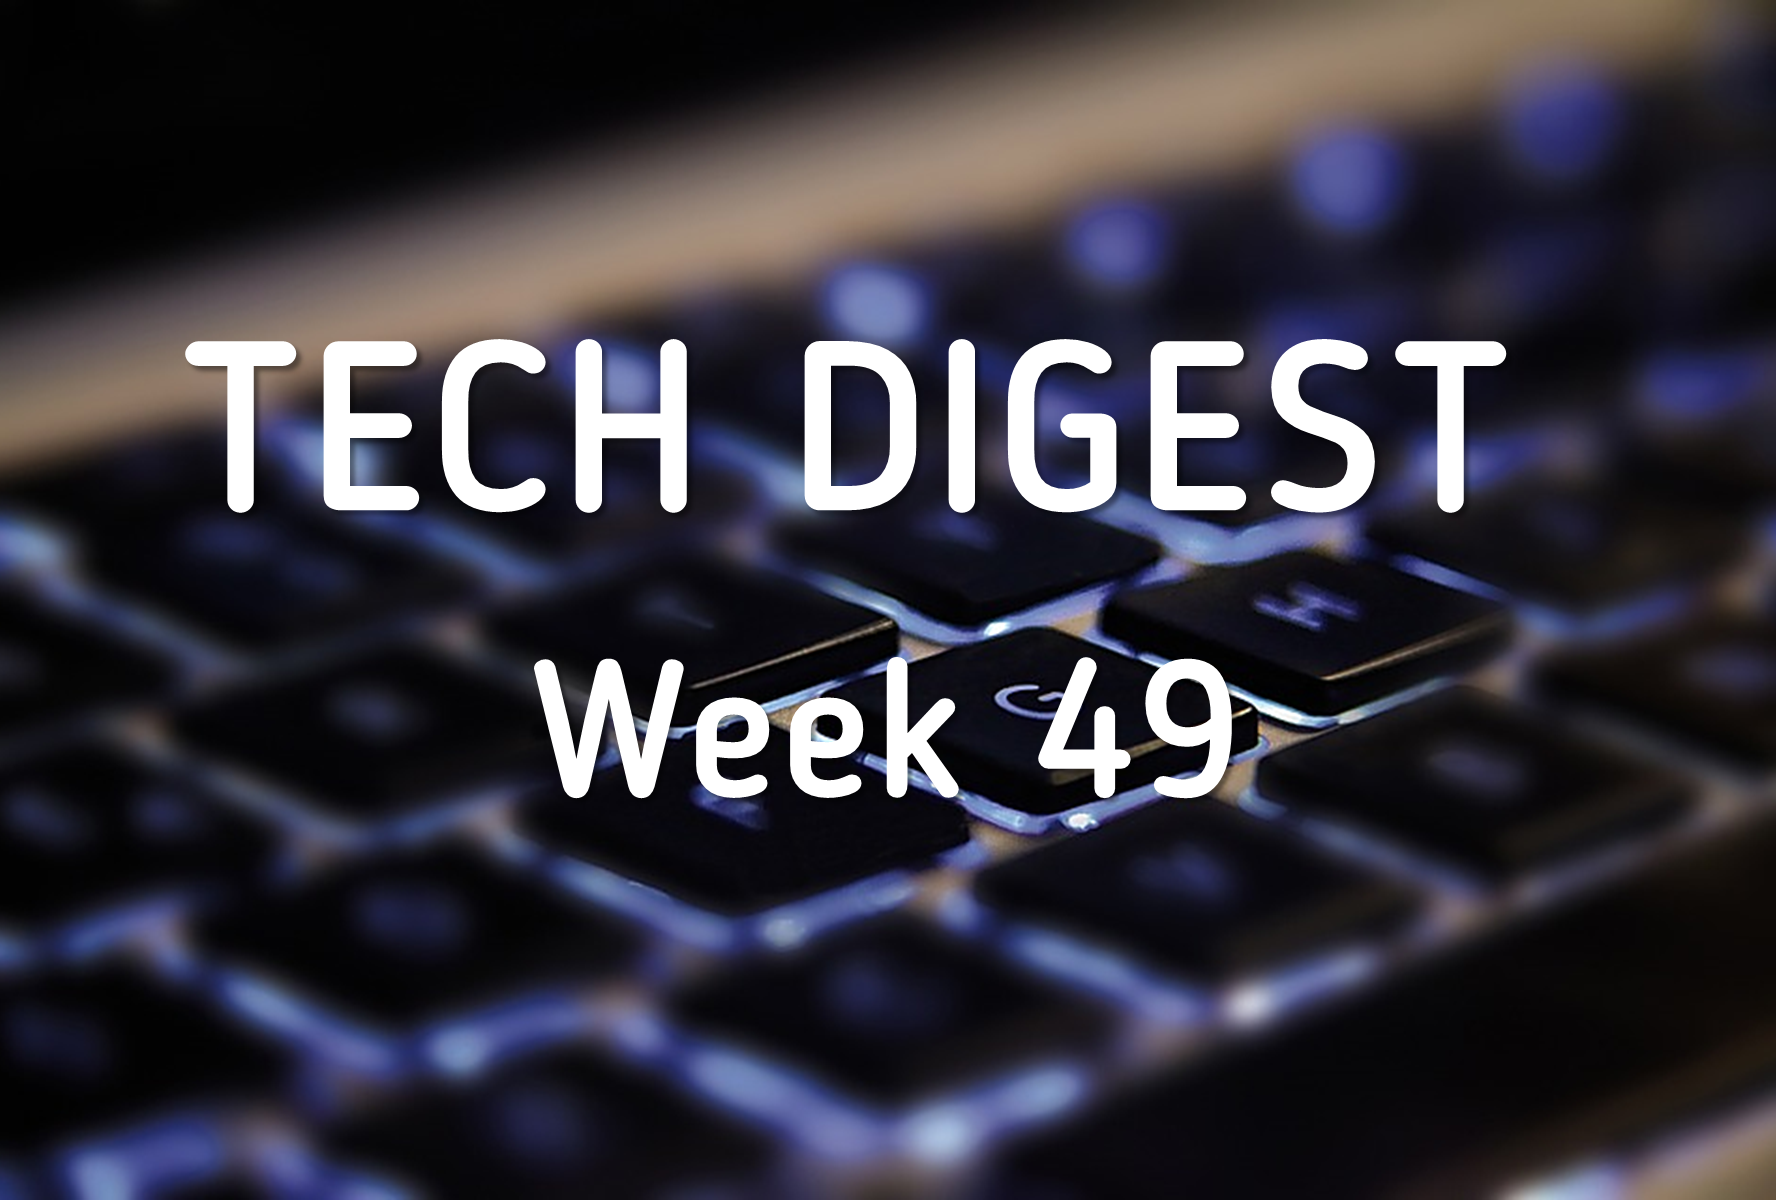 Week 49 Tech digest.png